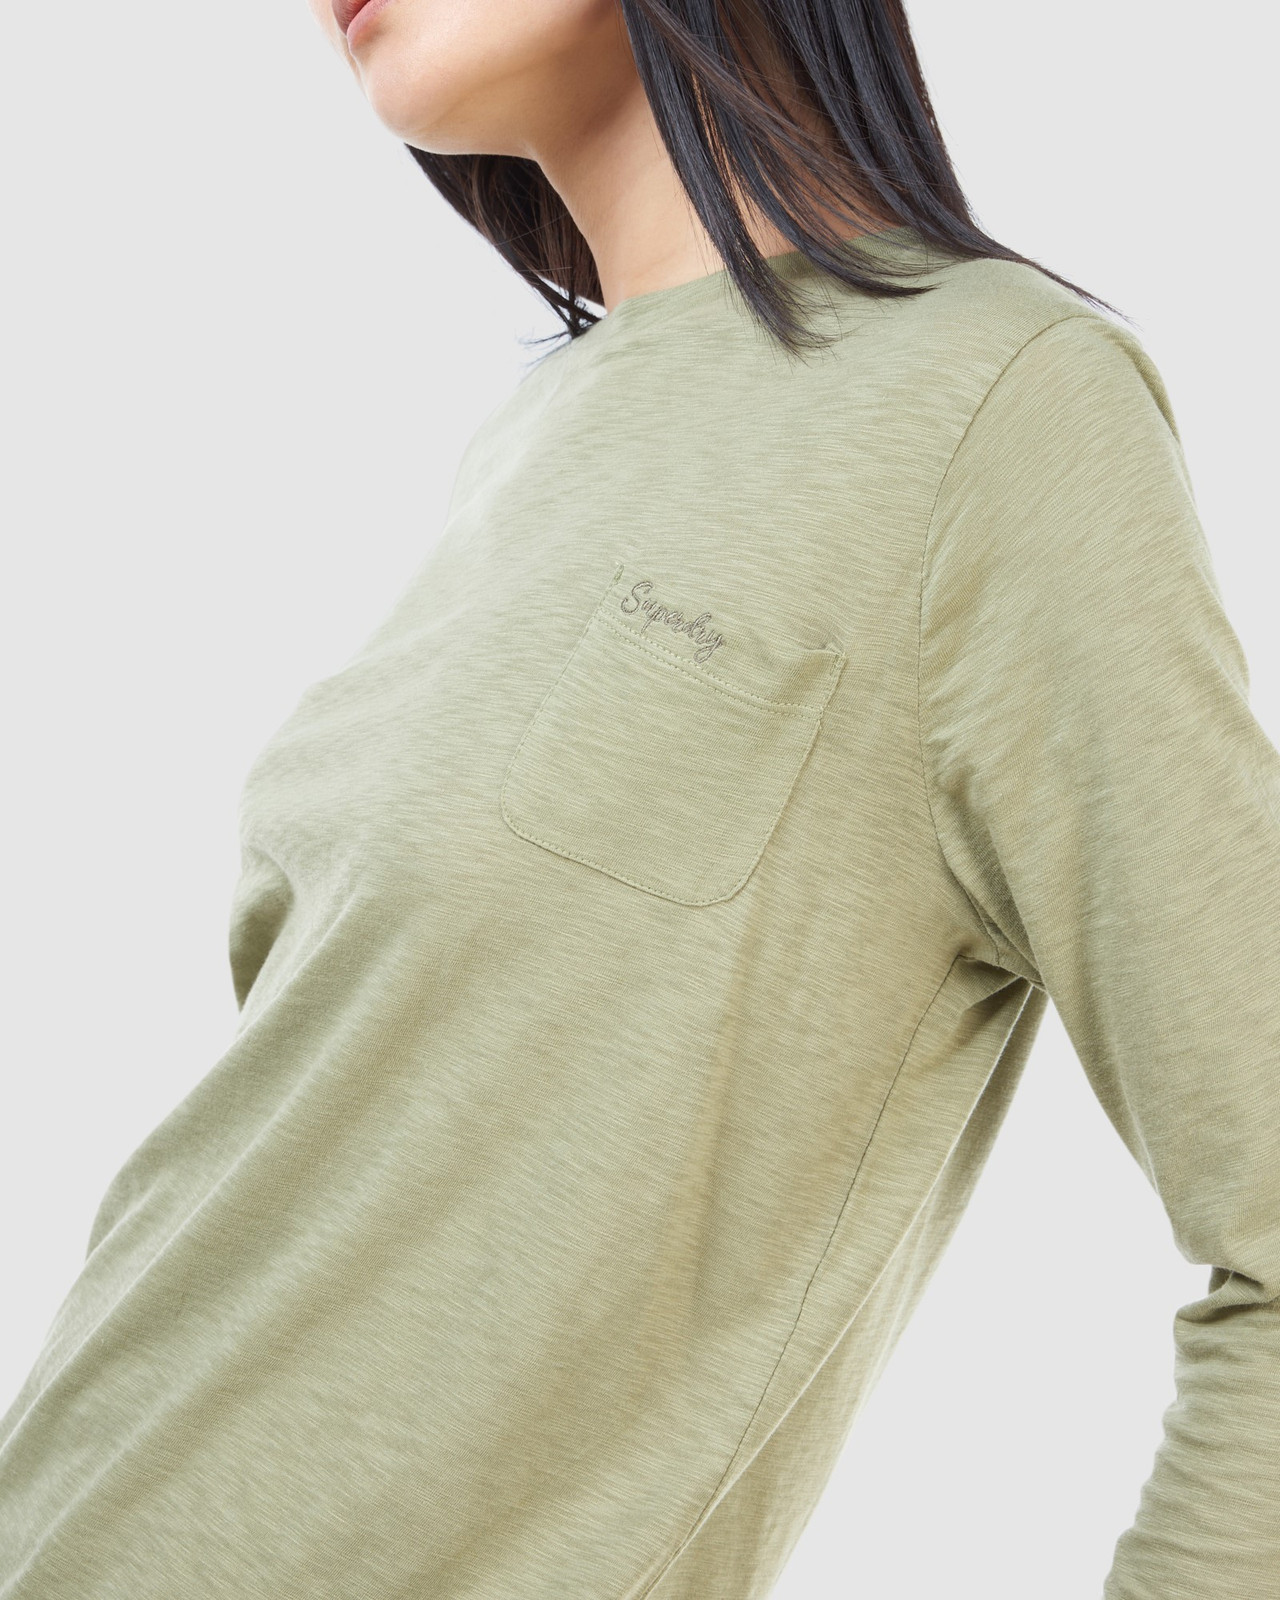 Superdry Womens SCRIPTED L/S CREW TOP Green Long Sleeve Top 5